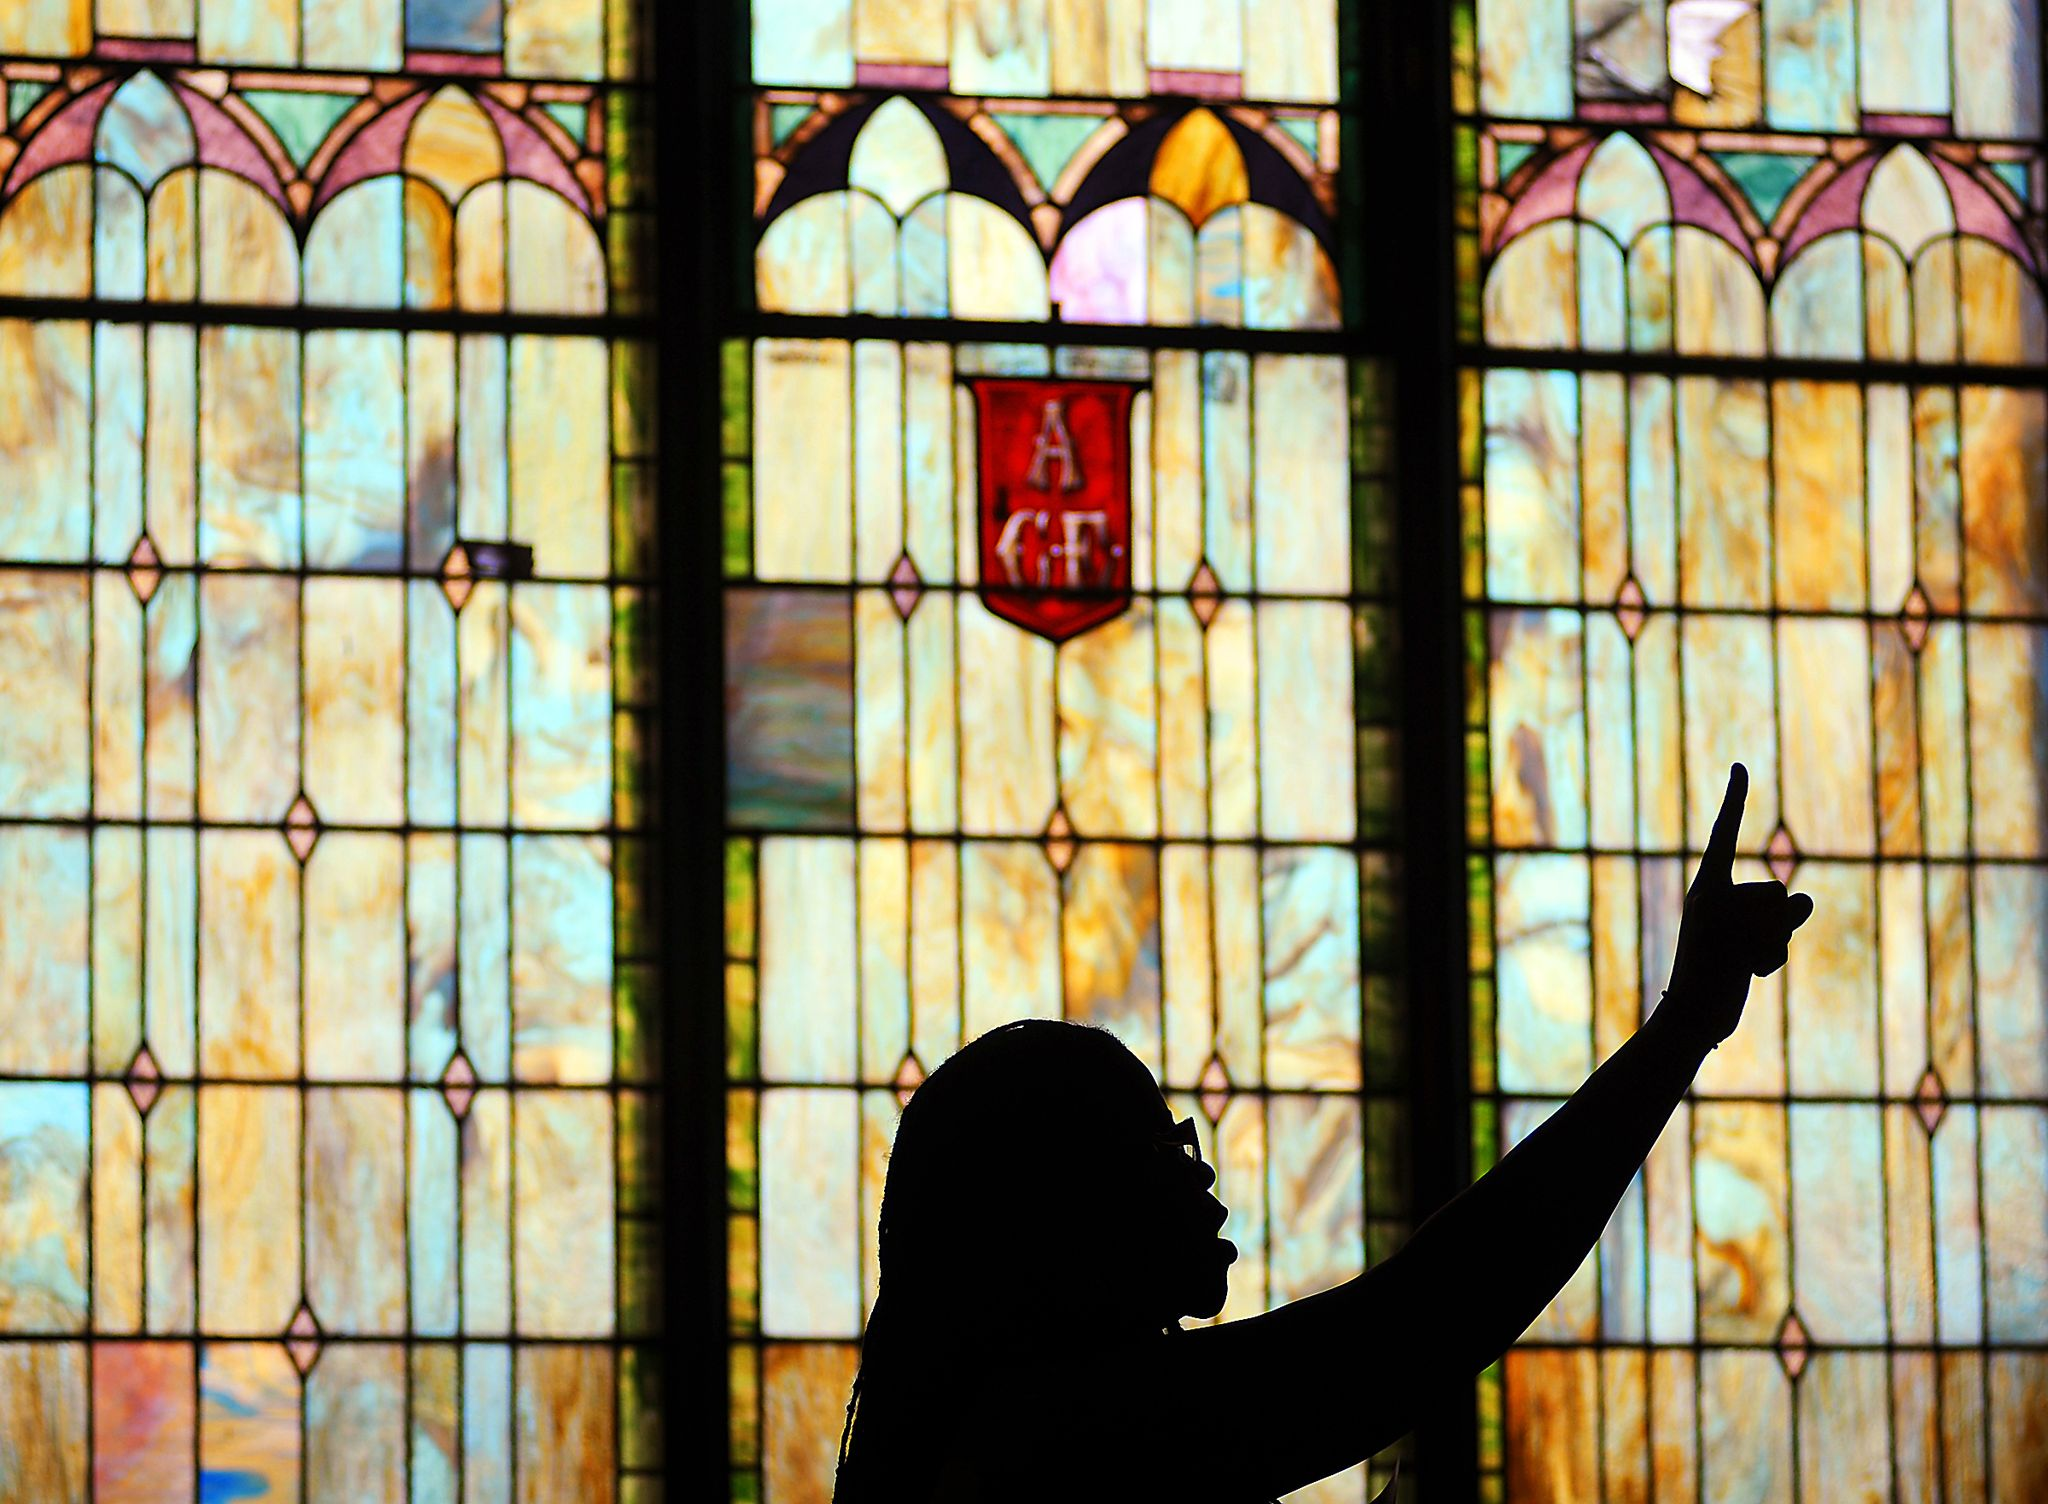 Strong religious beliefs linked to lower rates of drug abuse